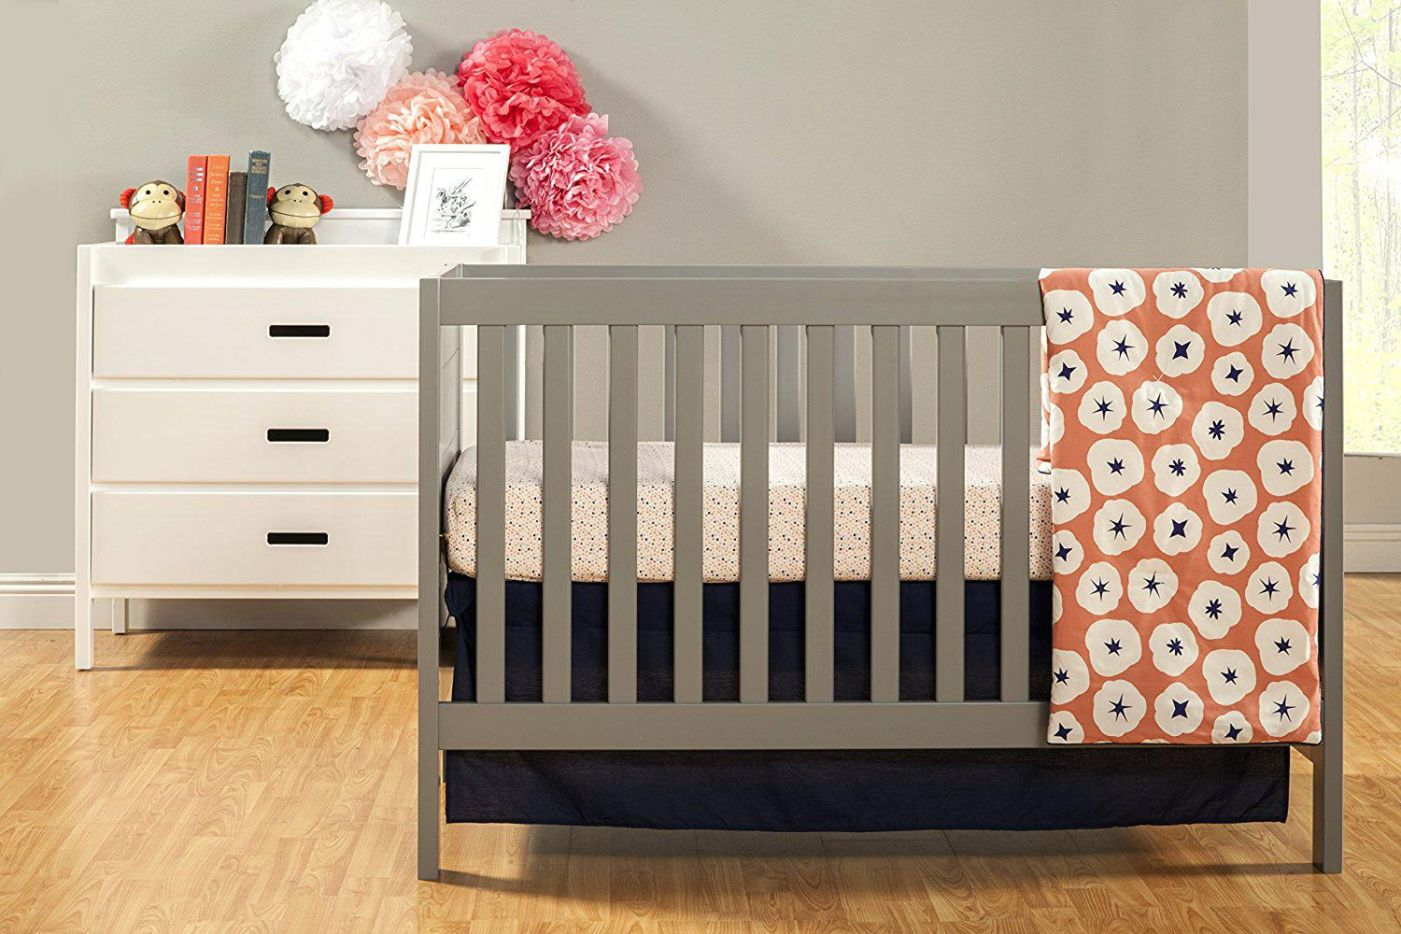 mirrored baby furniture. 30 Mirrored Baby Furniture - Master Bedroom Interior Design Ideas Check More At Http:/ T